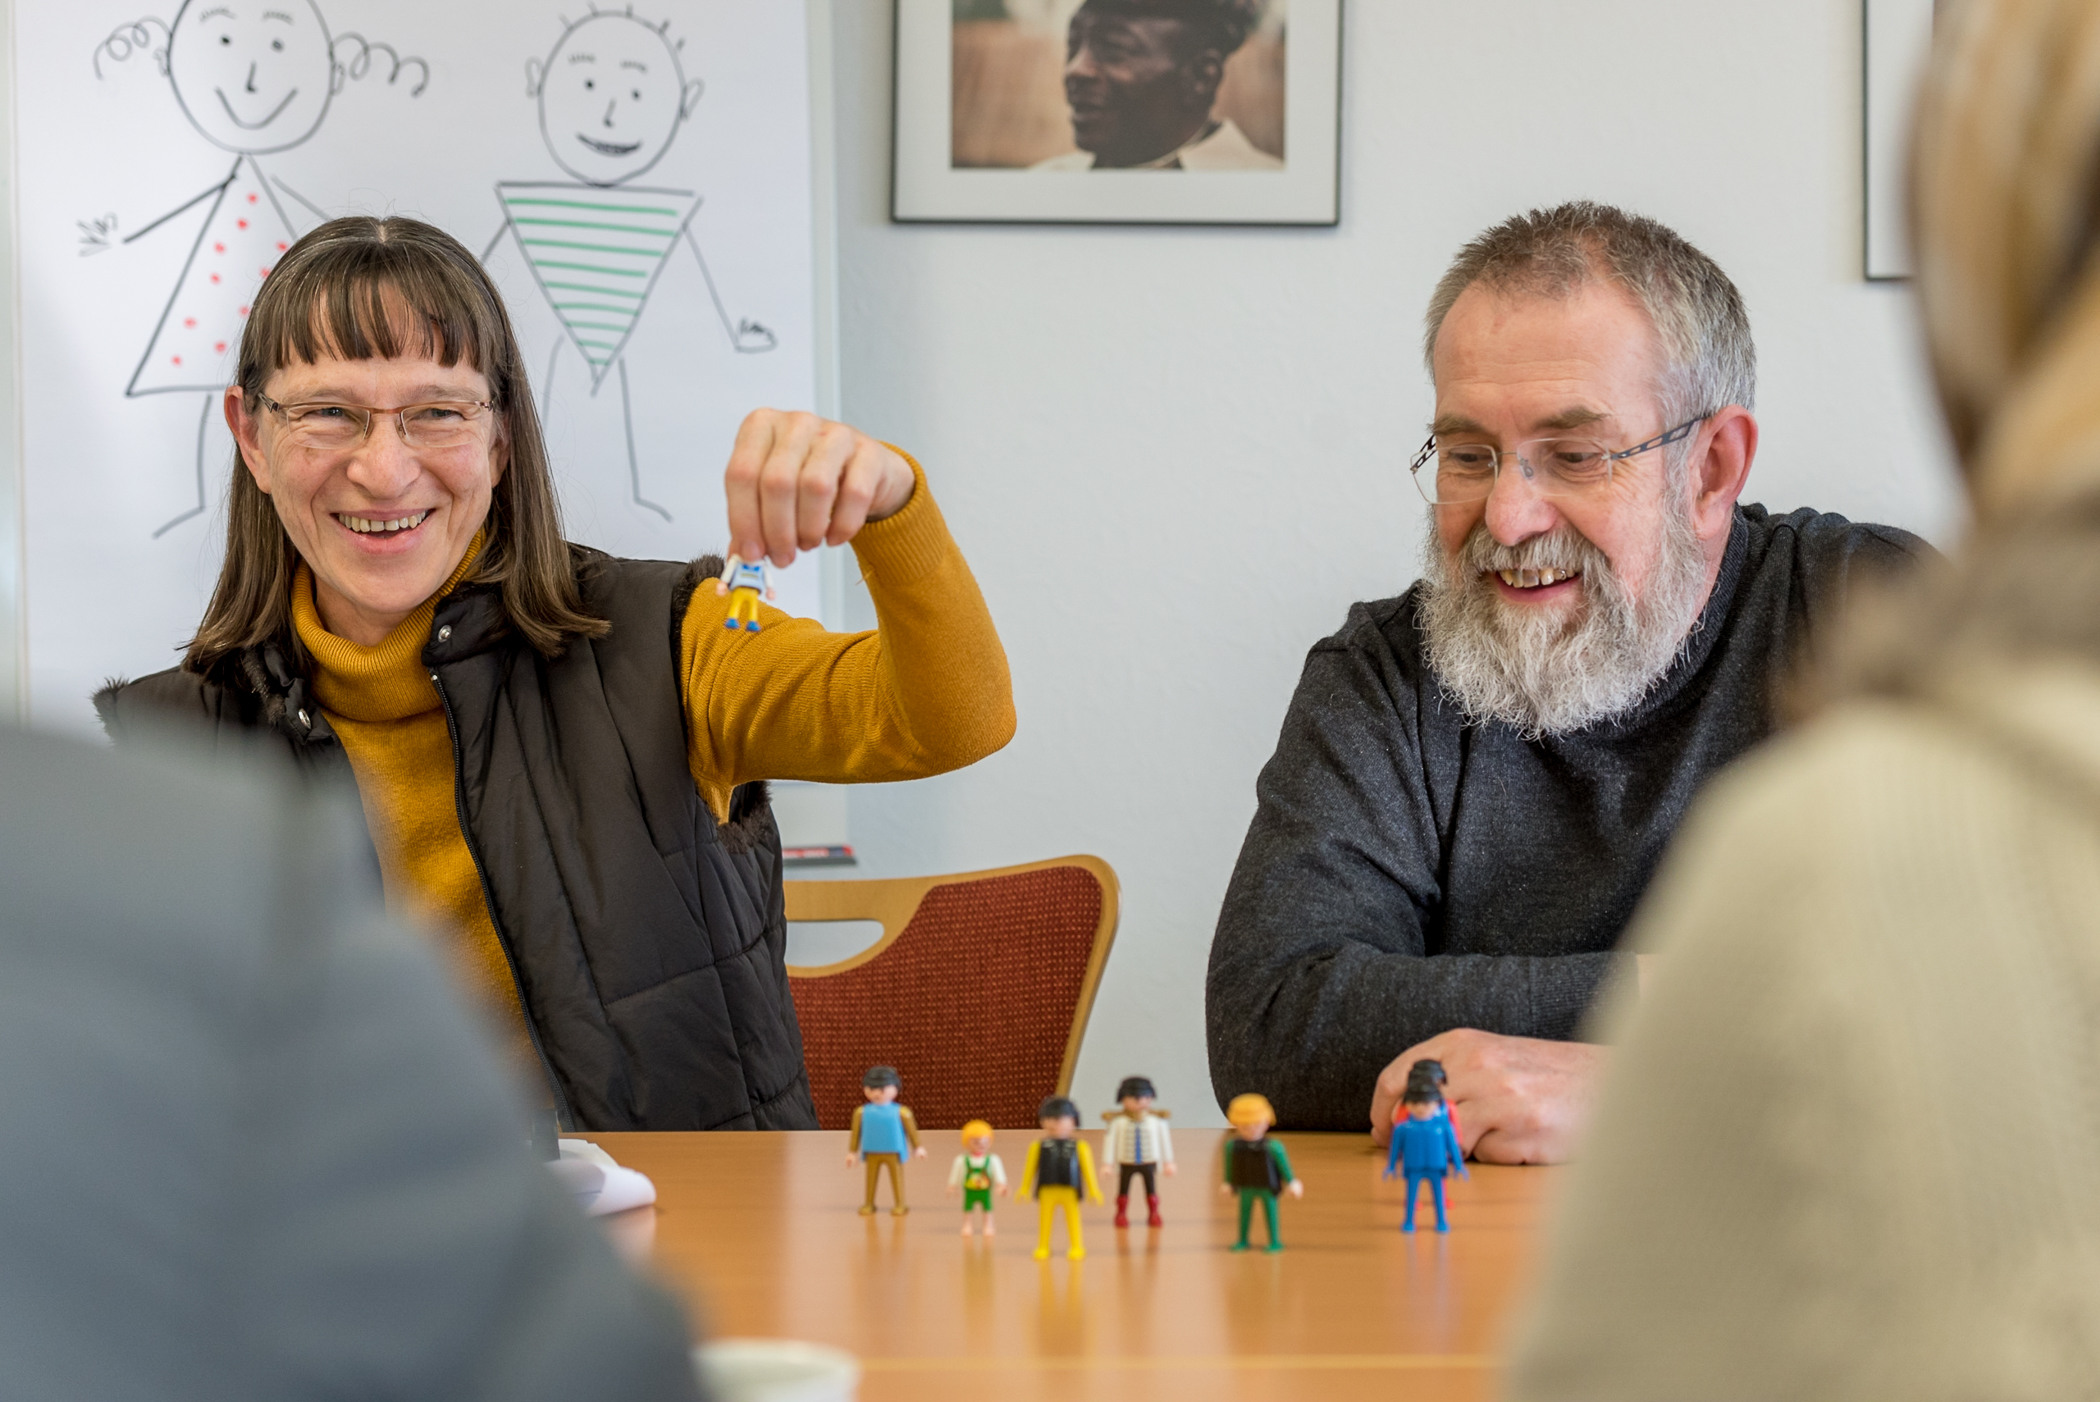 Dorothee and Eugen Müller present their sample lesson, using figures from a common toy line, to a couple of recently-arrived refugees from West Asia. The Müllers' lesson is meant to teach descriptive terms for people, like hair color, size, and gender.  Particpants are selecting the figures that match the descriptions they hear the Müllers say. Dorothee and Eugen's mother tongue is German [deu]. The German for Refugees course is a train-the-trainer course designed to equip Germans to teach their language to recently arriving refugees.